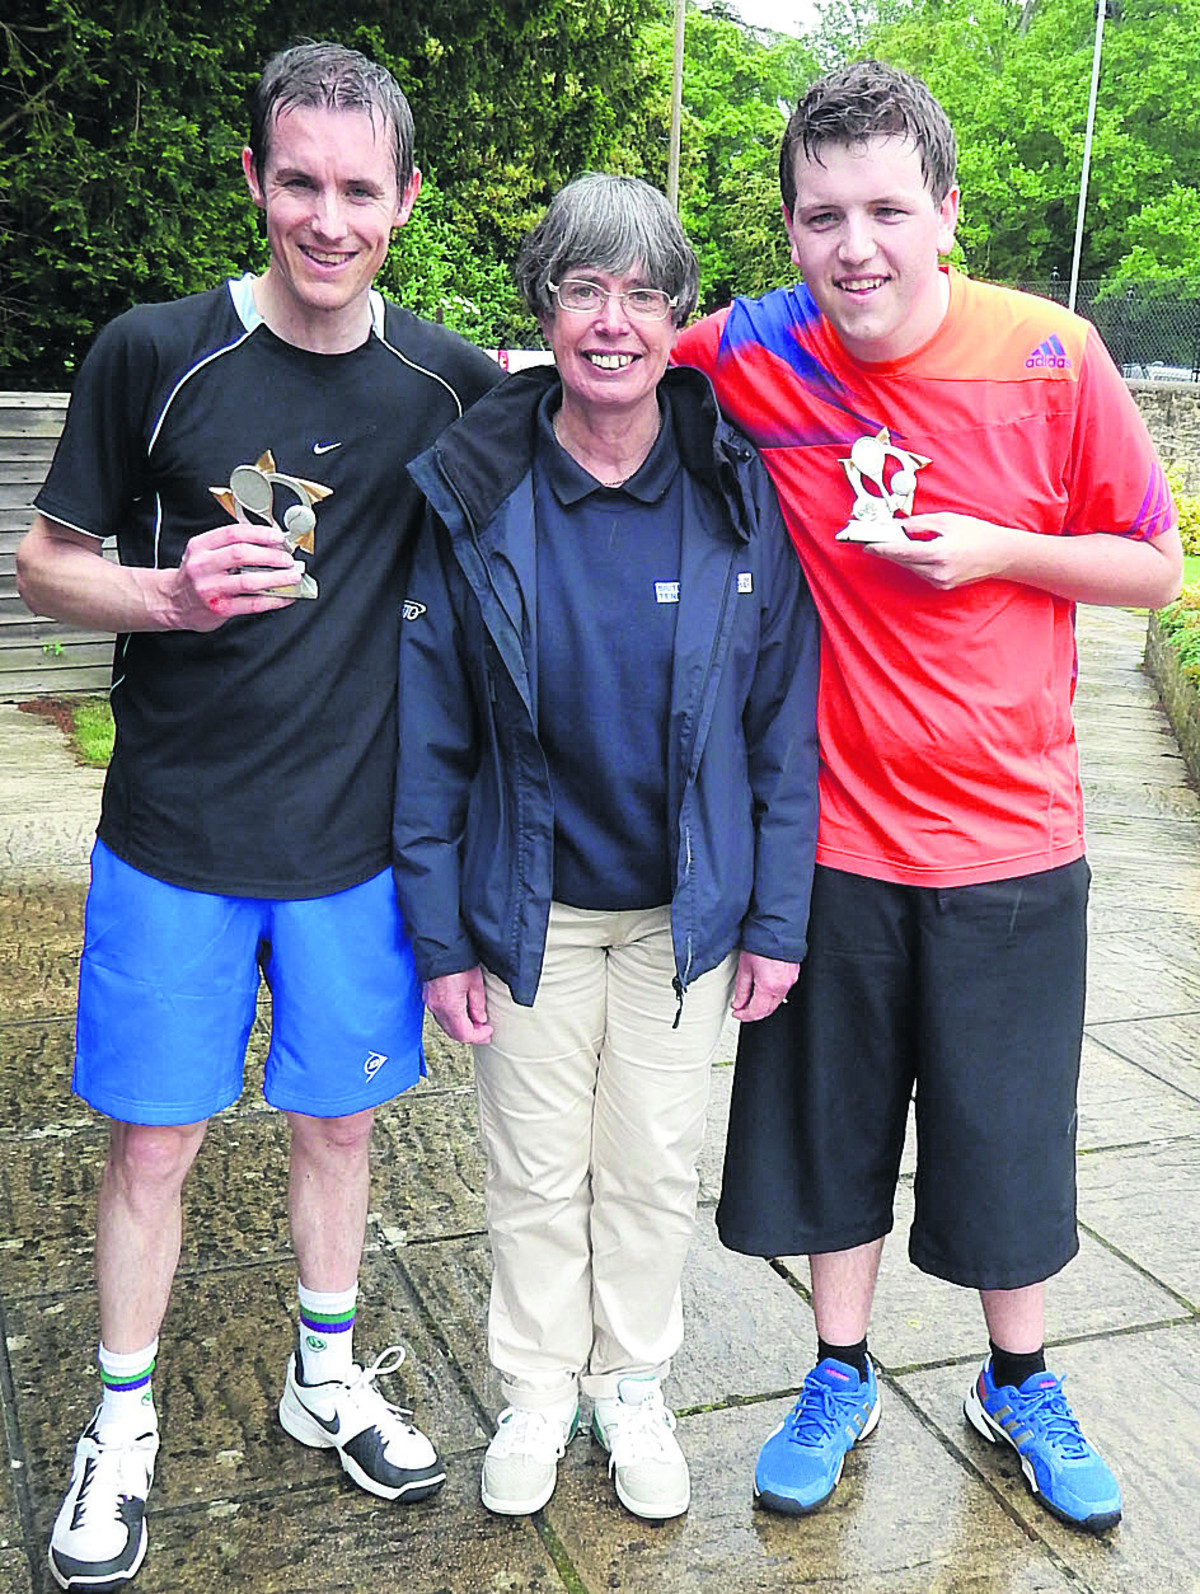 Rob Powell (left) won the inaugural men's competition at his home club Woodstock, pictured with referee Alison Jackson and runner-up Charlie Lane, from Abingdon